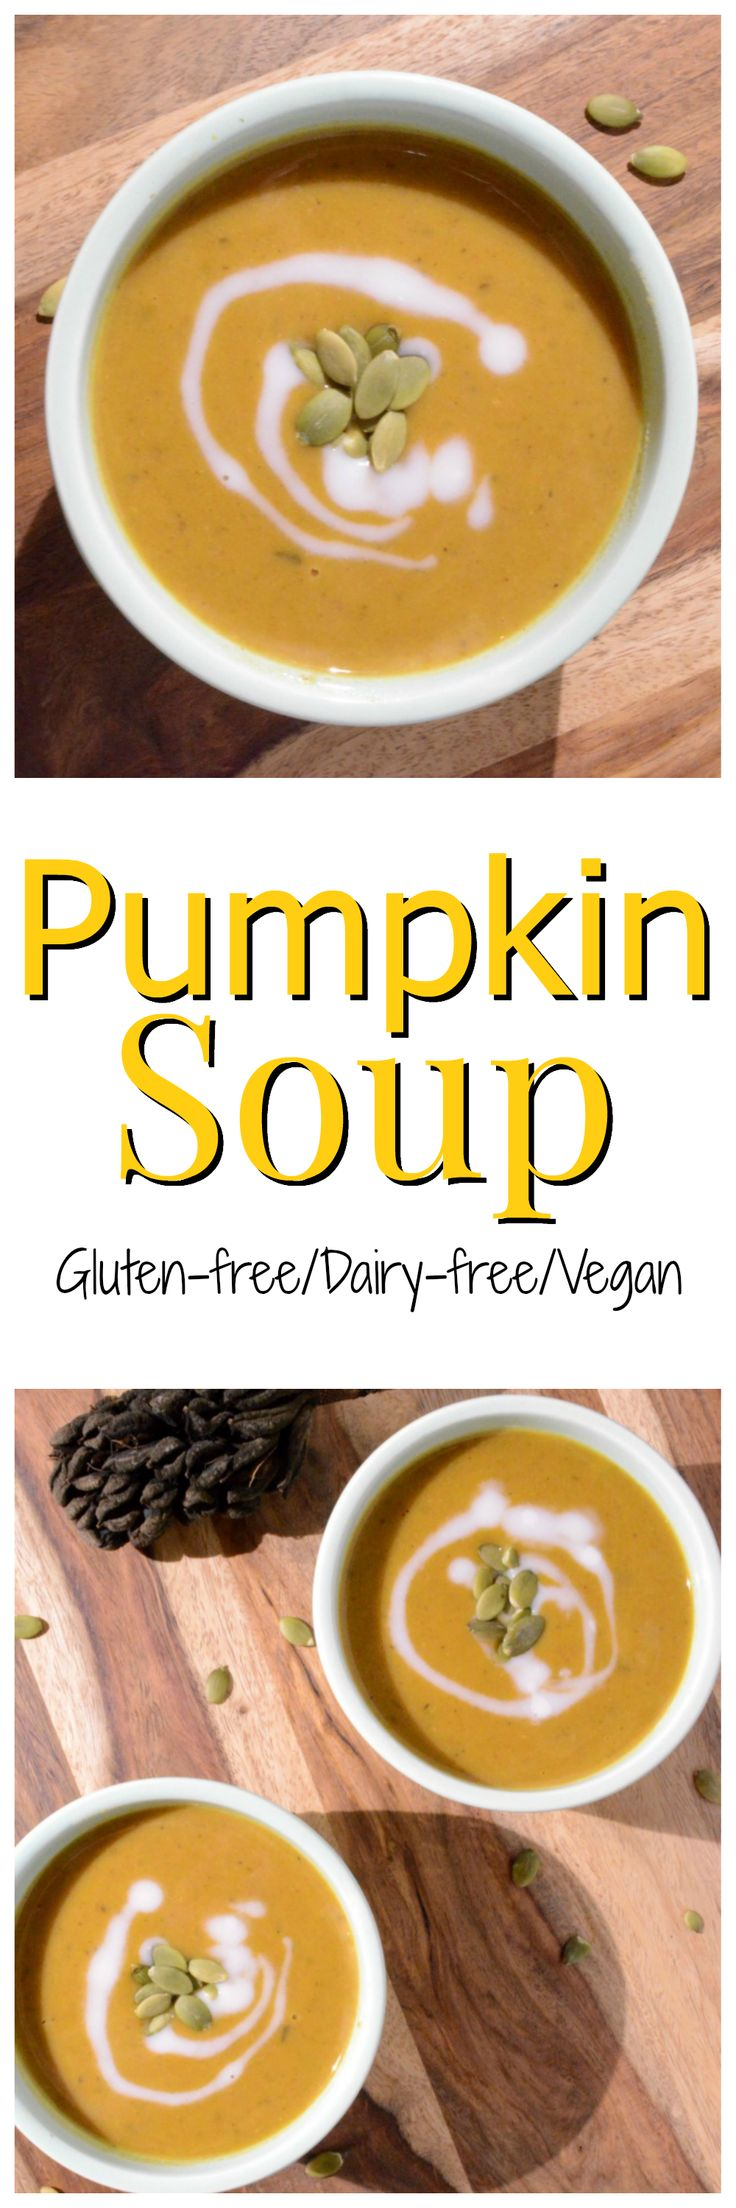 This pumpkin soup is creamy in texture. Sophisticated enough to serve at a nice dinner party but also simple enough to serve your toddler.